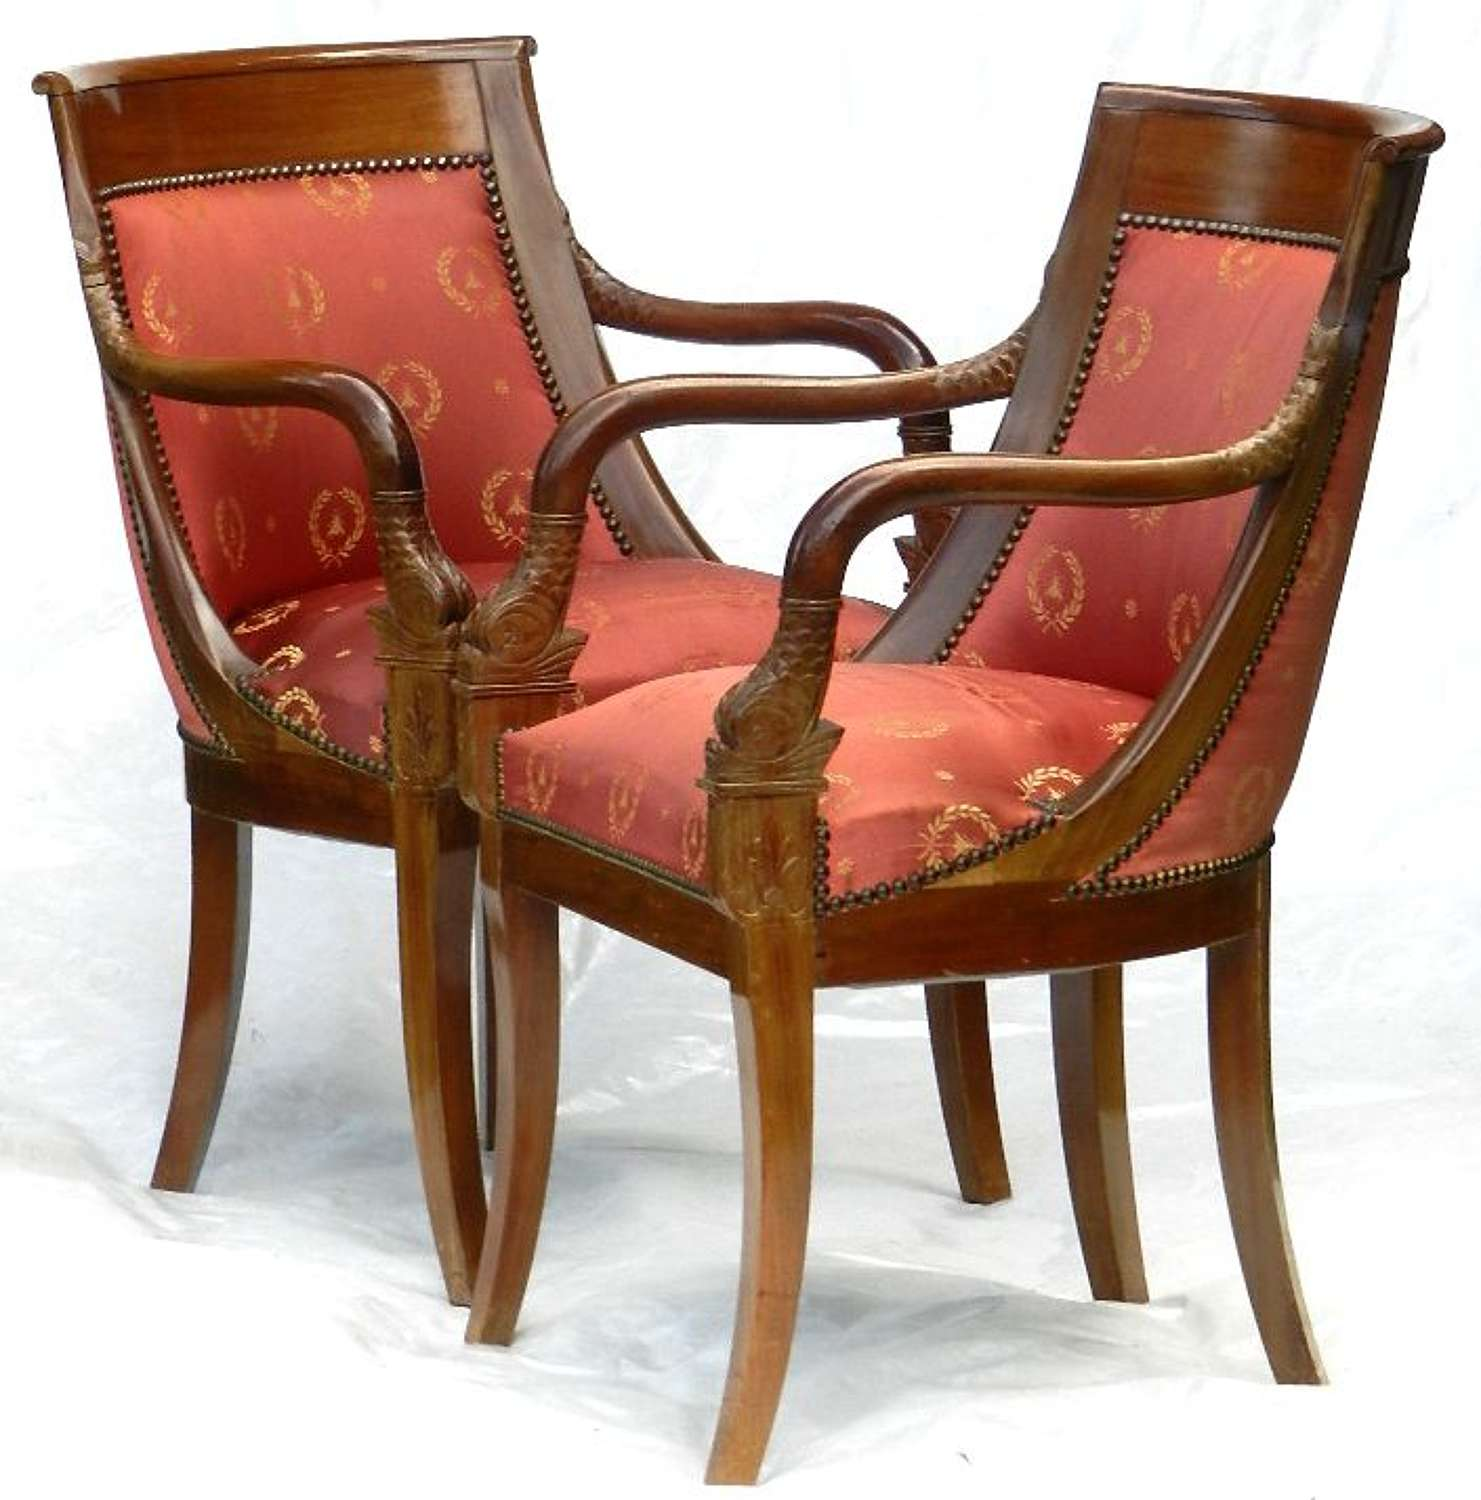 6 (4+2) French Empire revival Gondola Dining Chairs